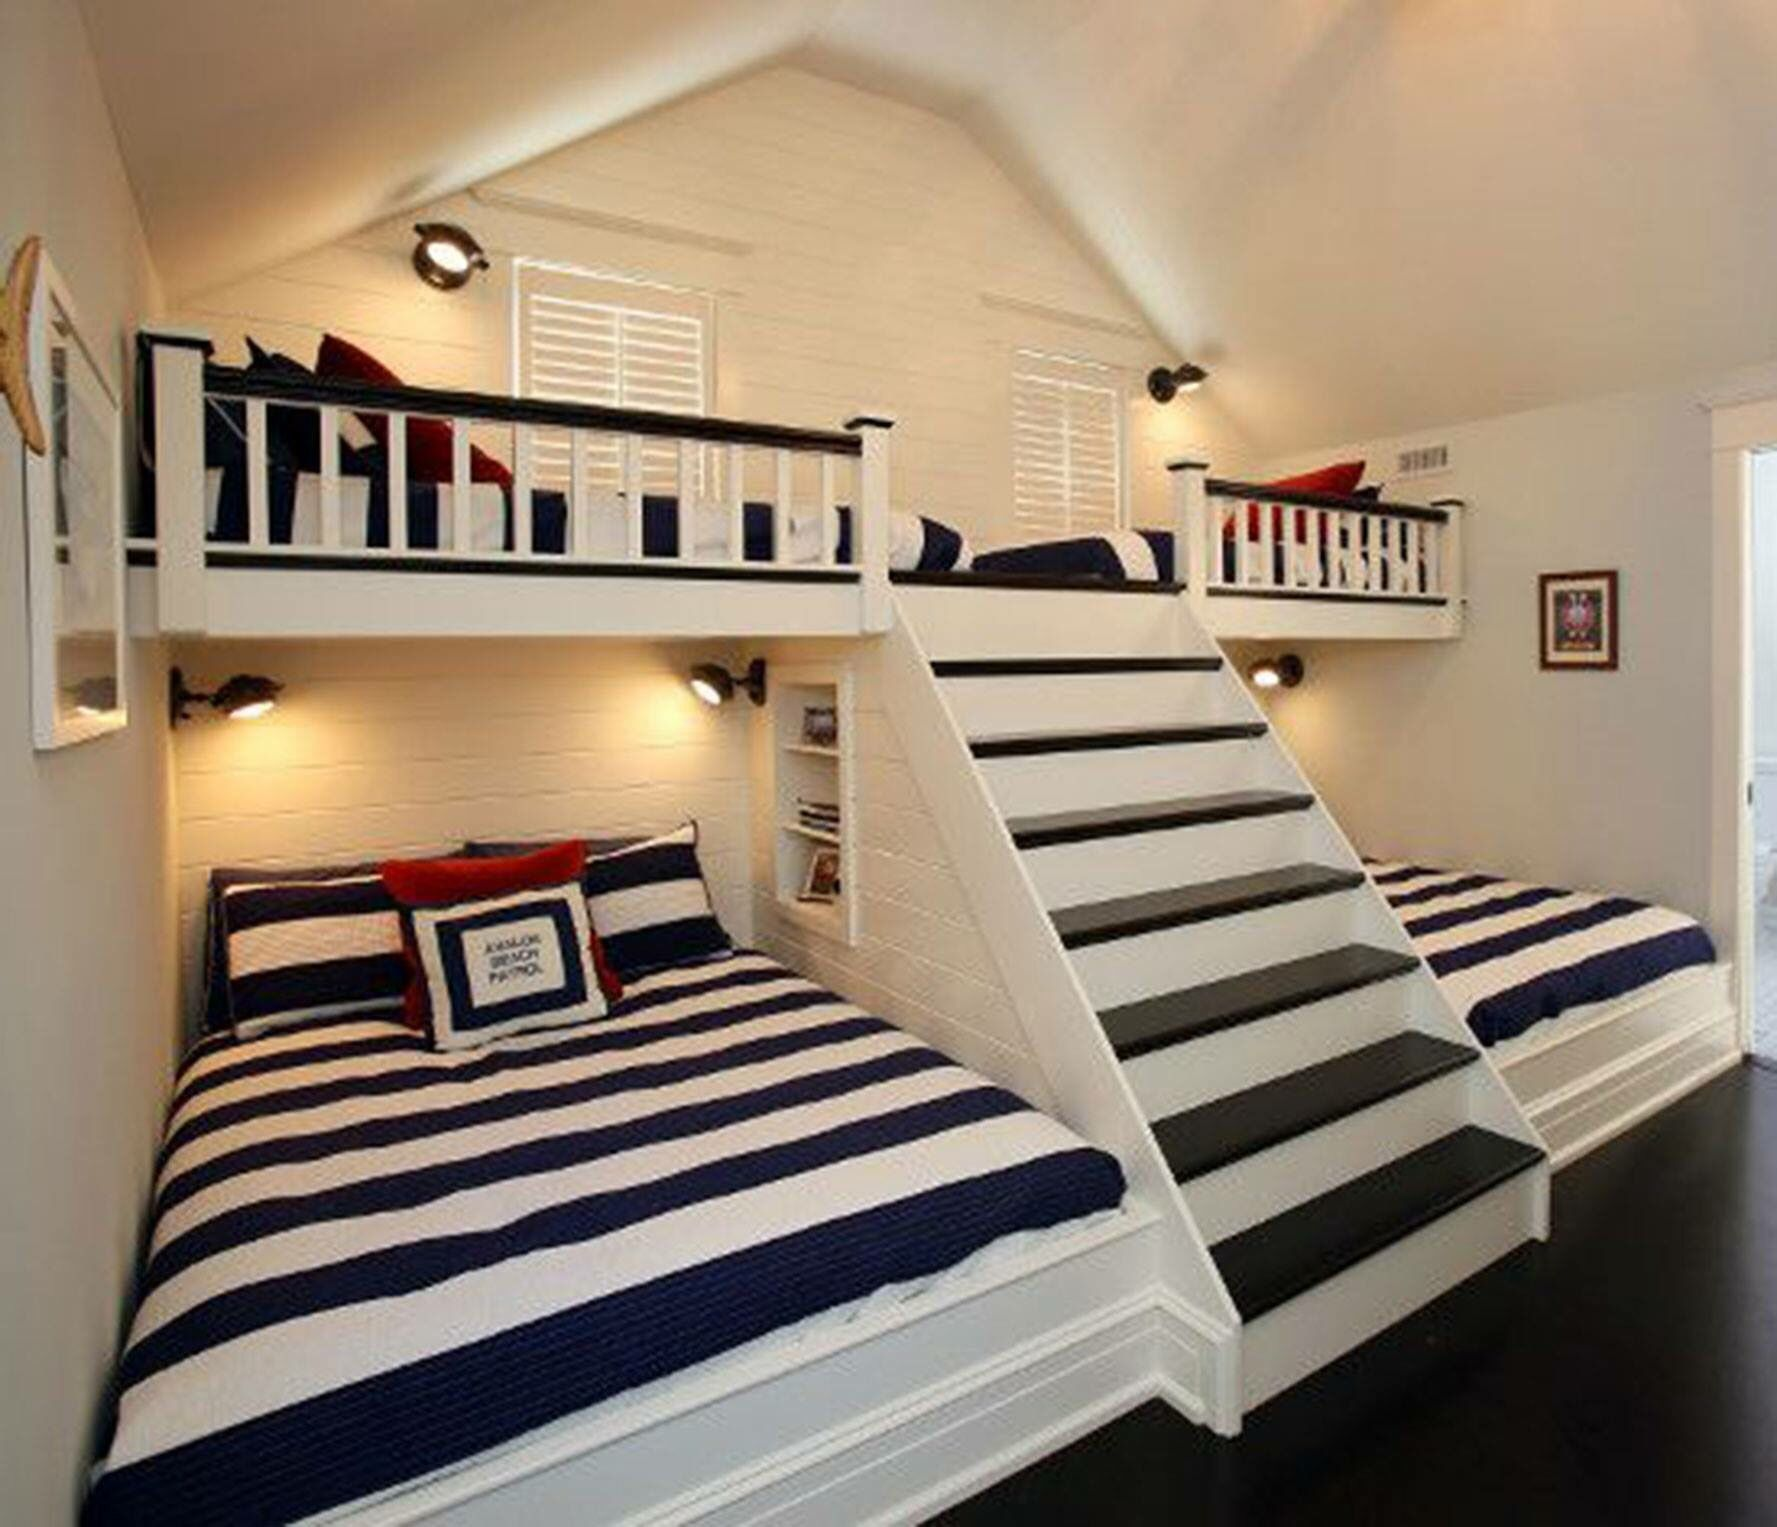 Basic built in bunk bed Houzz readers loved the custom grown up